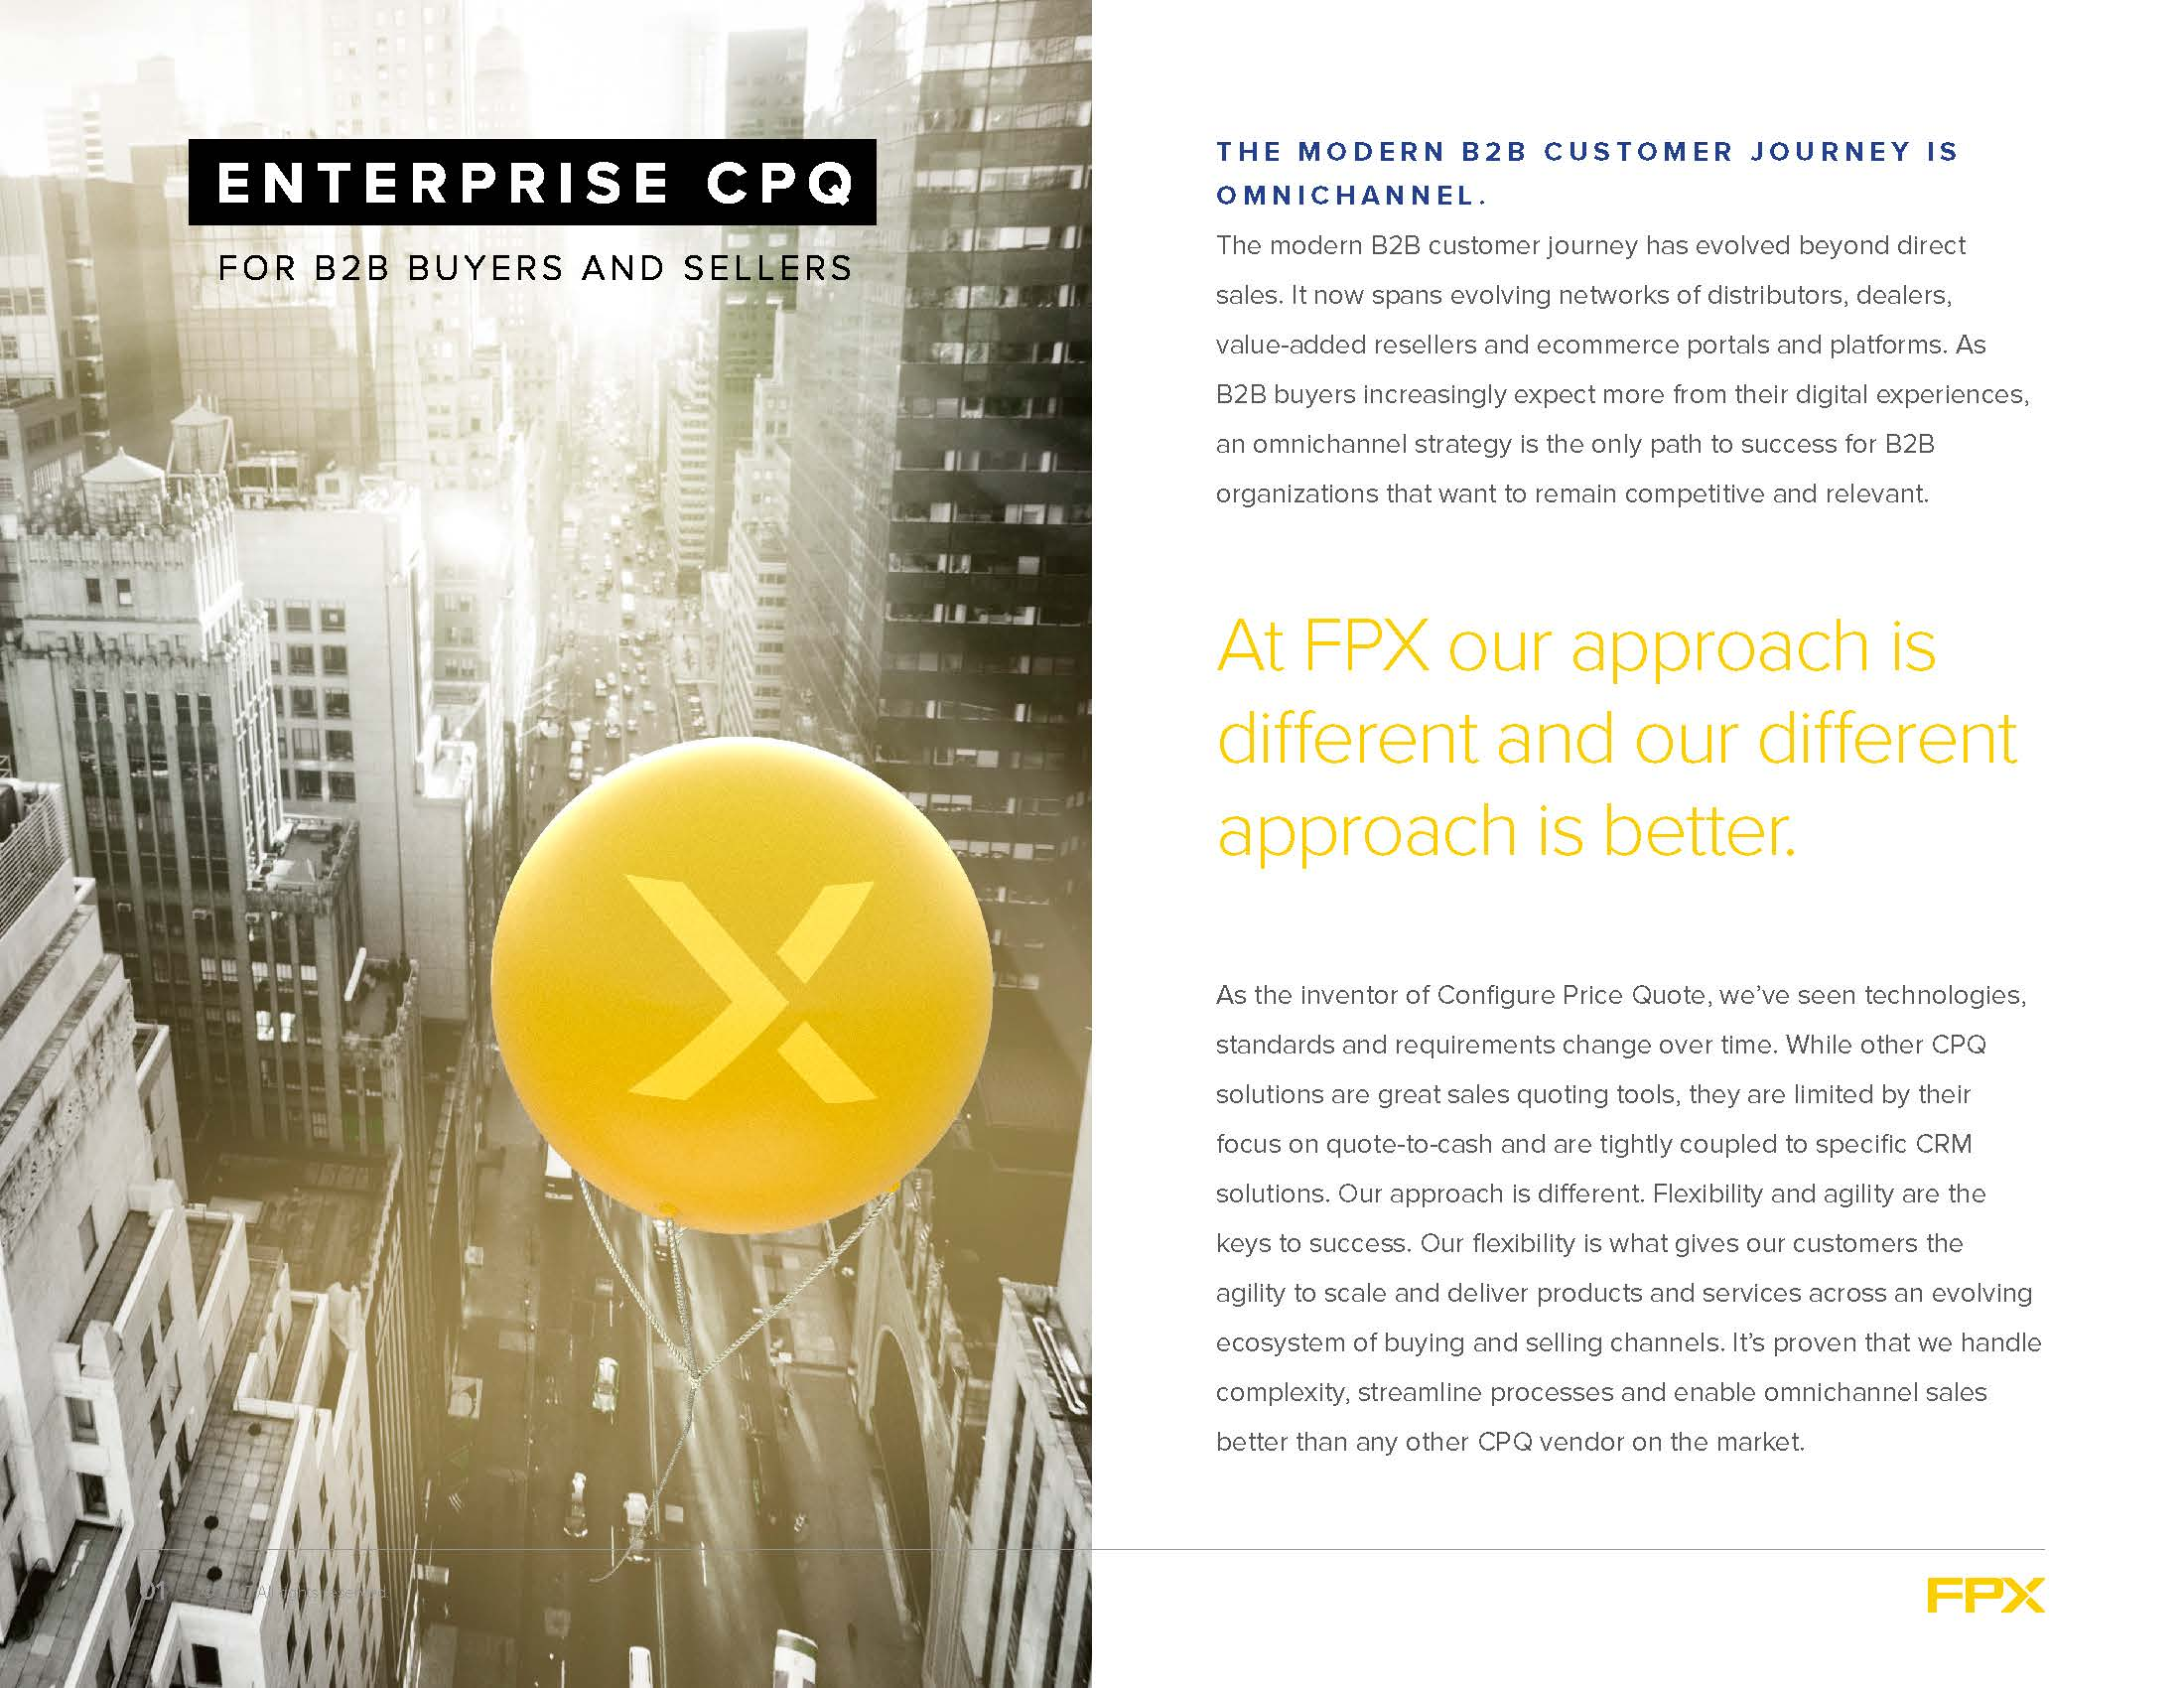 About FPX